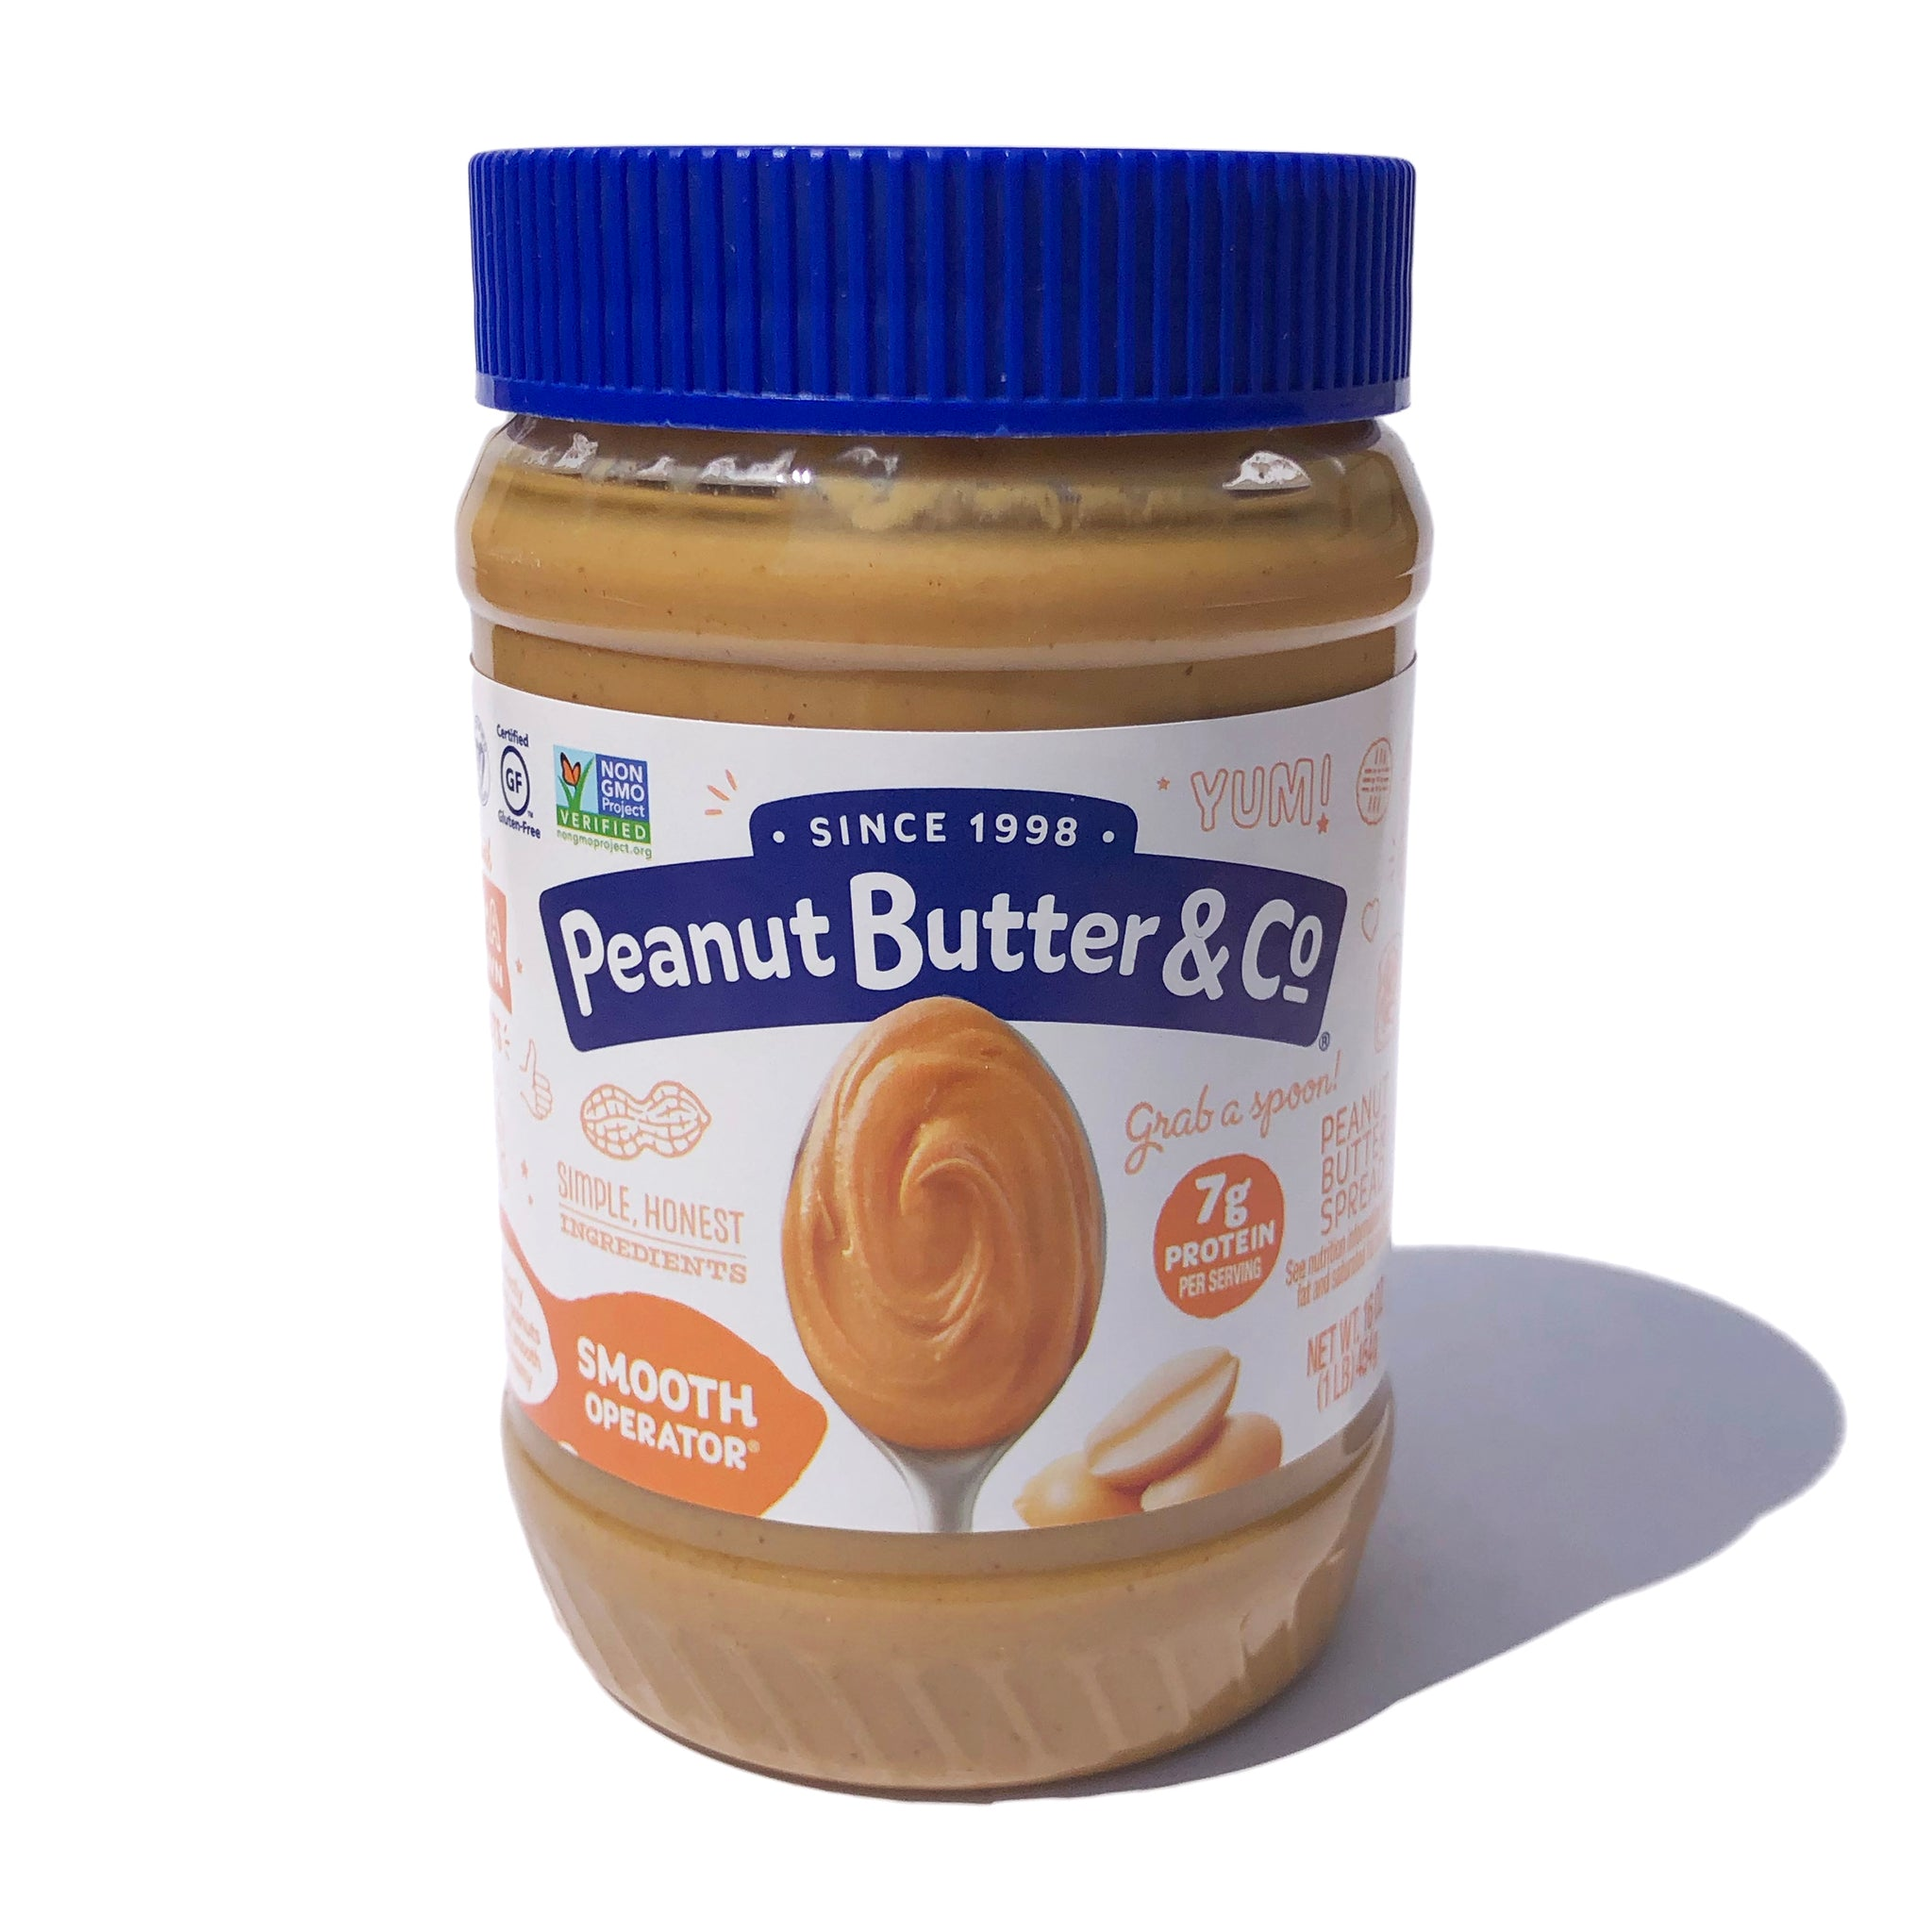 Peanut Butter & Co. Smooth Operator